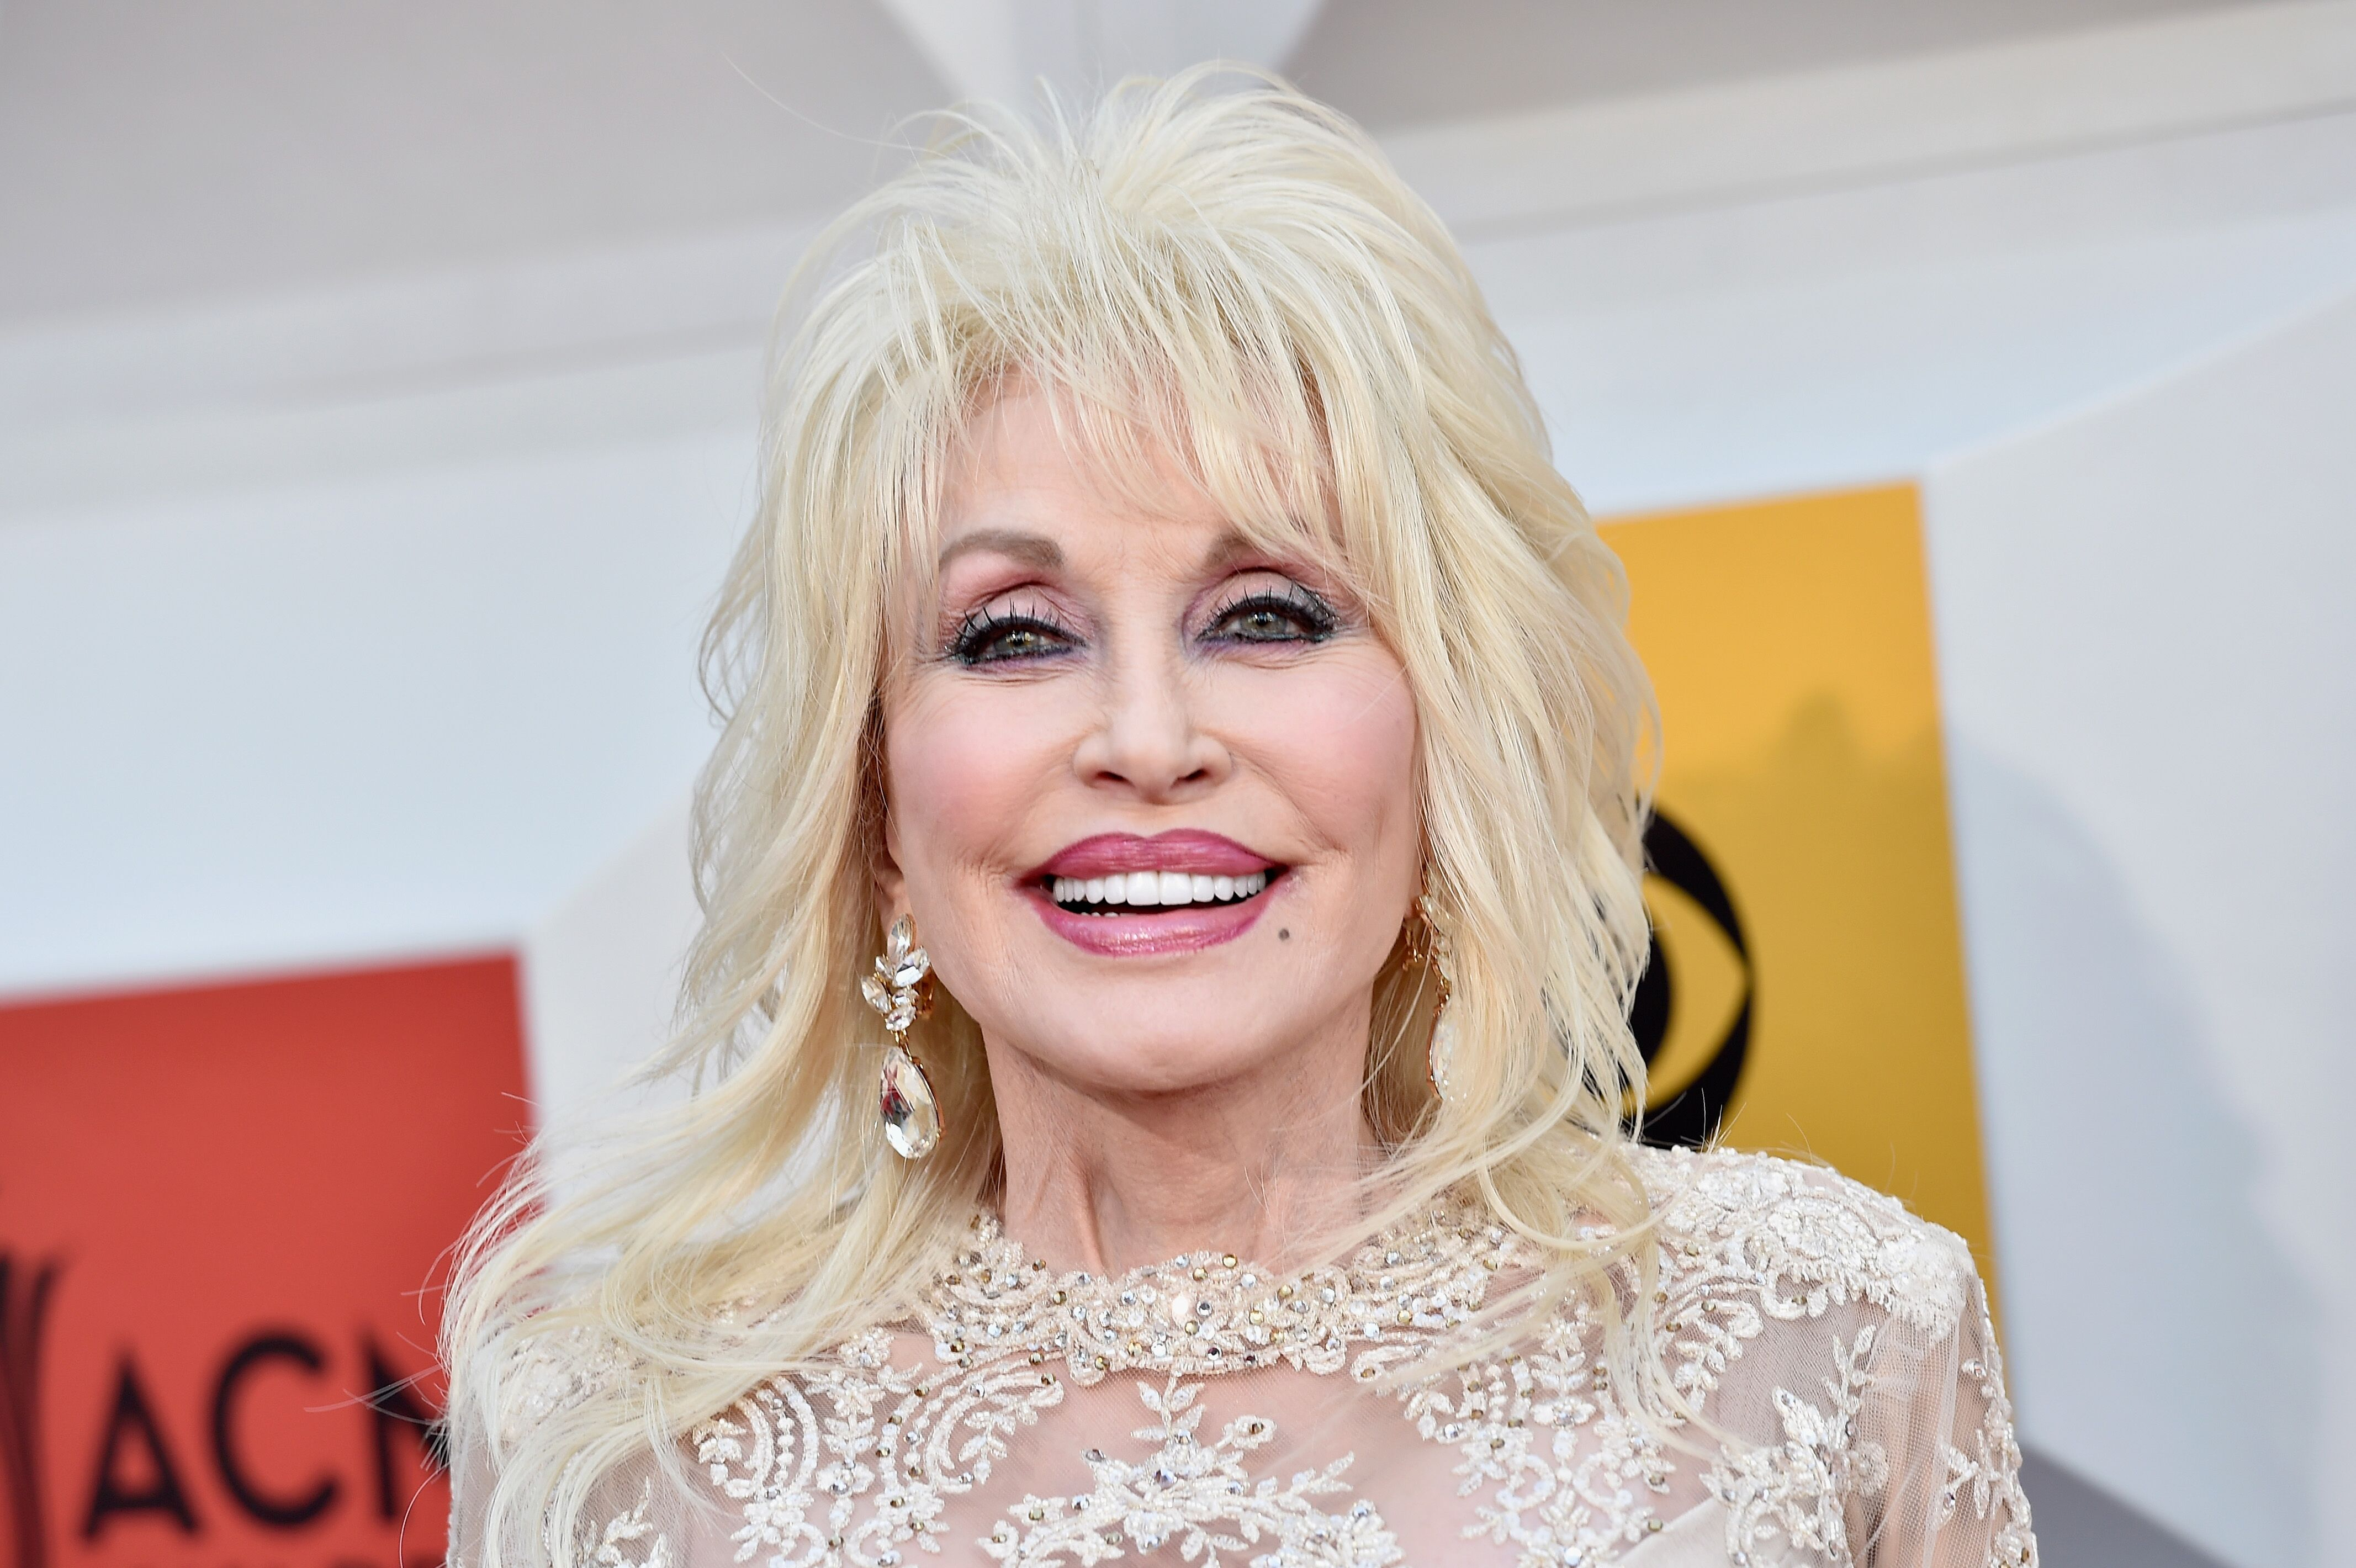 Dolly Parton at the 51st Academy of Country Music Awards. | Source: Getty Images